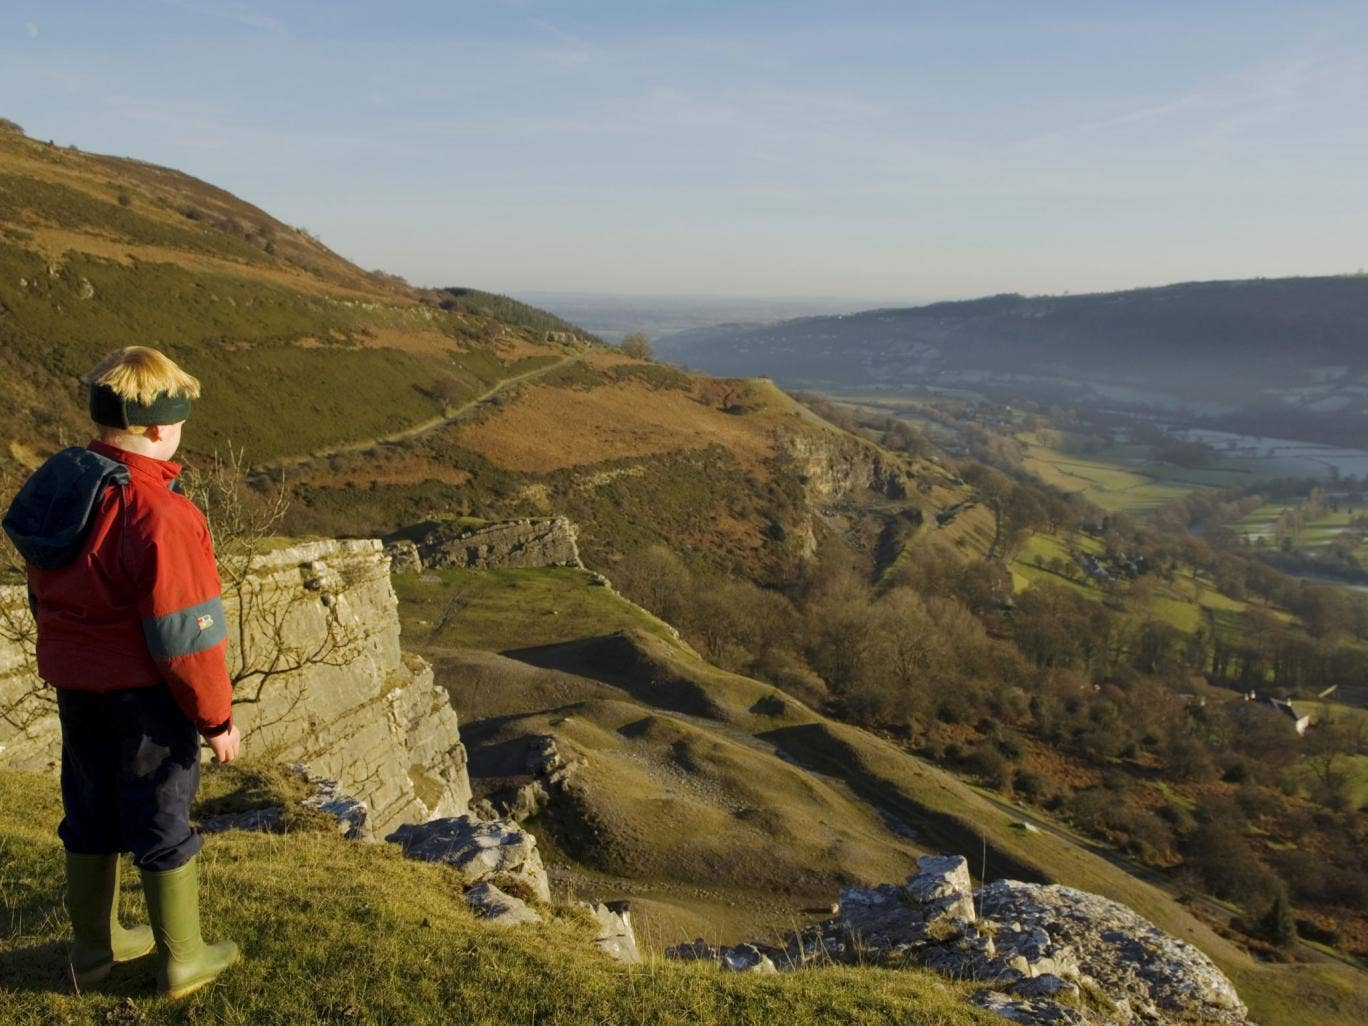 A boy overlooks the Vale of Llangollen near to where the section of Offa's Dyke has allegedly been flattened